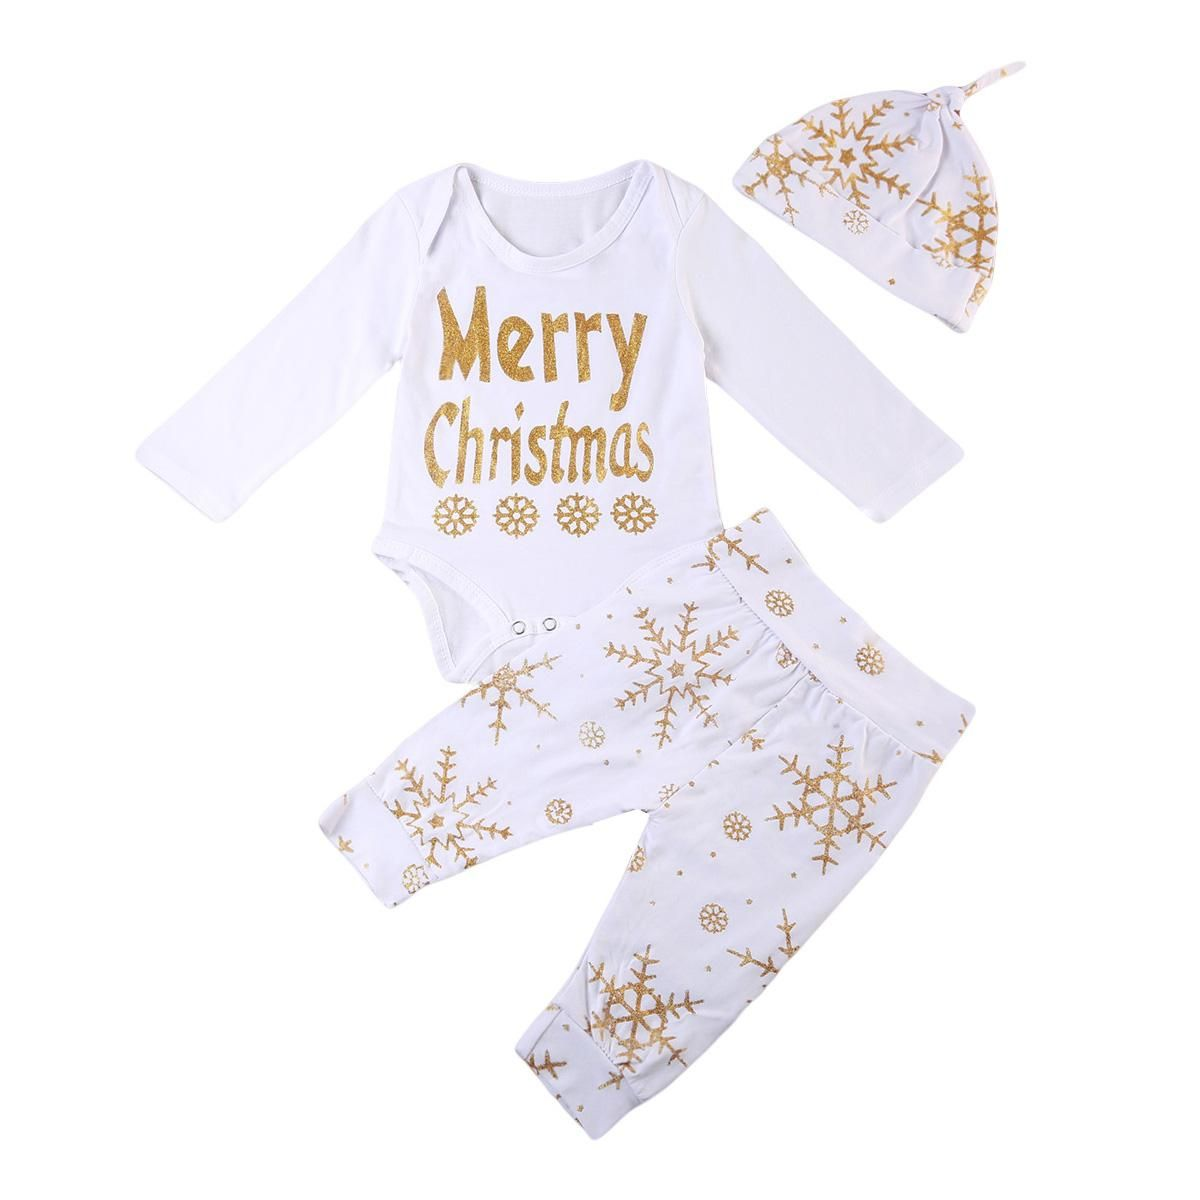 432b8edf46f2 Cotton Christmas Clothes Tops Romper Pants Hat 3PCS Newborn Baby ...